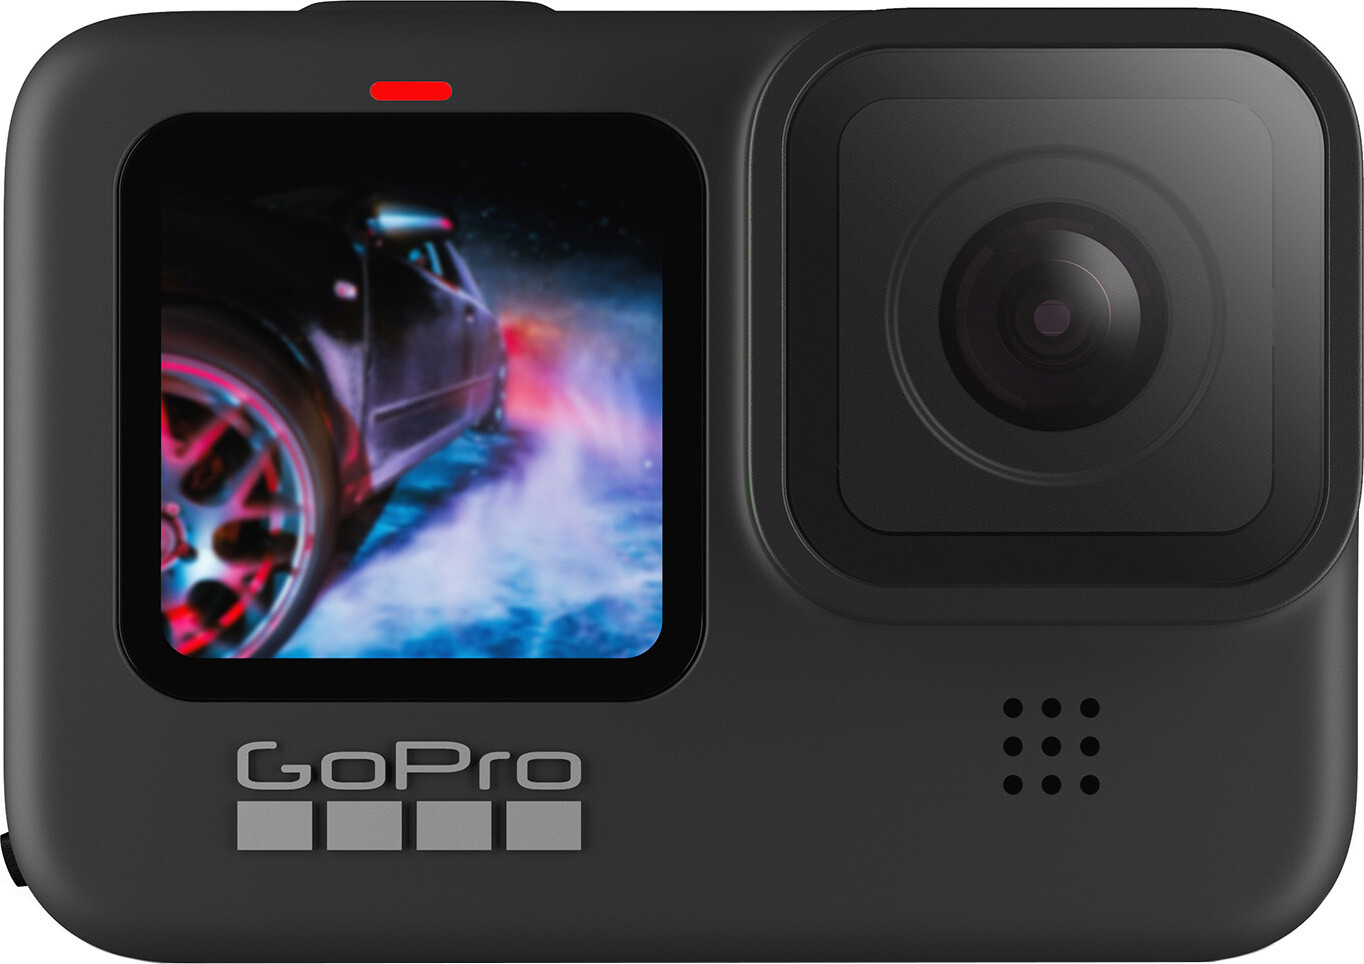 Экшн-камера GoPro HERO9 Black Edition (CHDHX-901-RW) экшн камера gopro hero8 black edition chdhx 801 rw